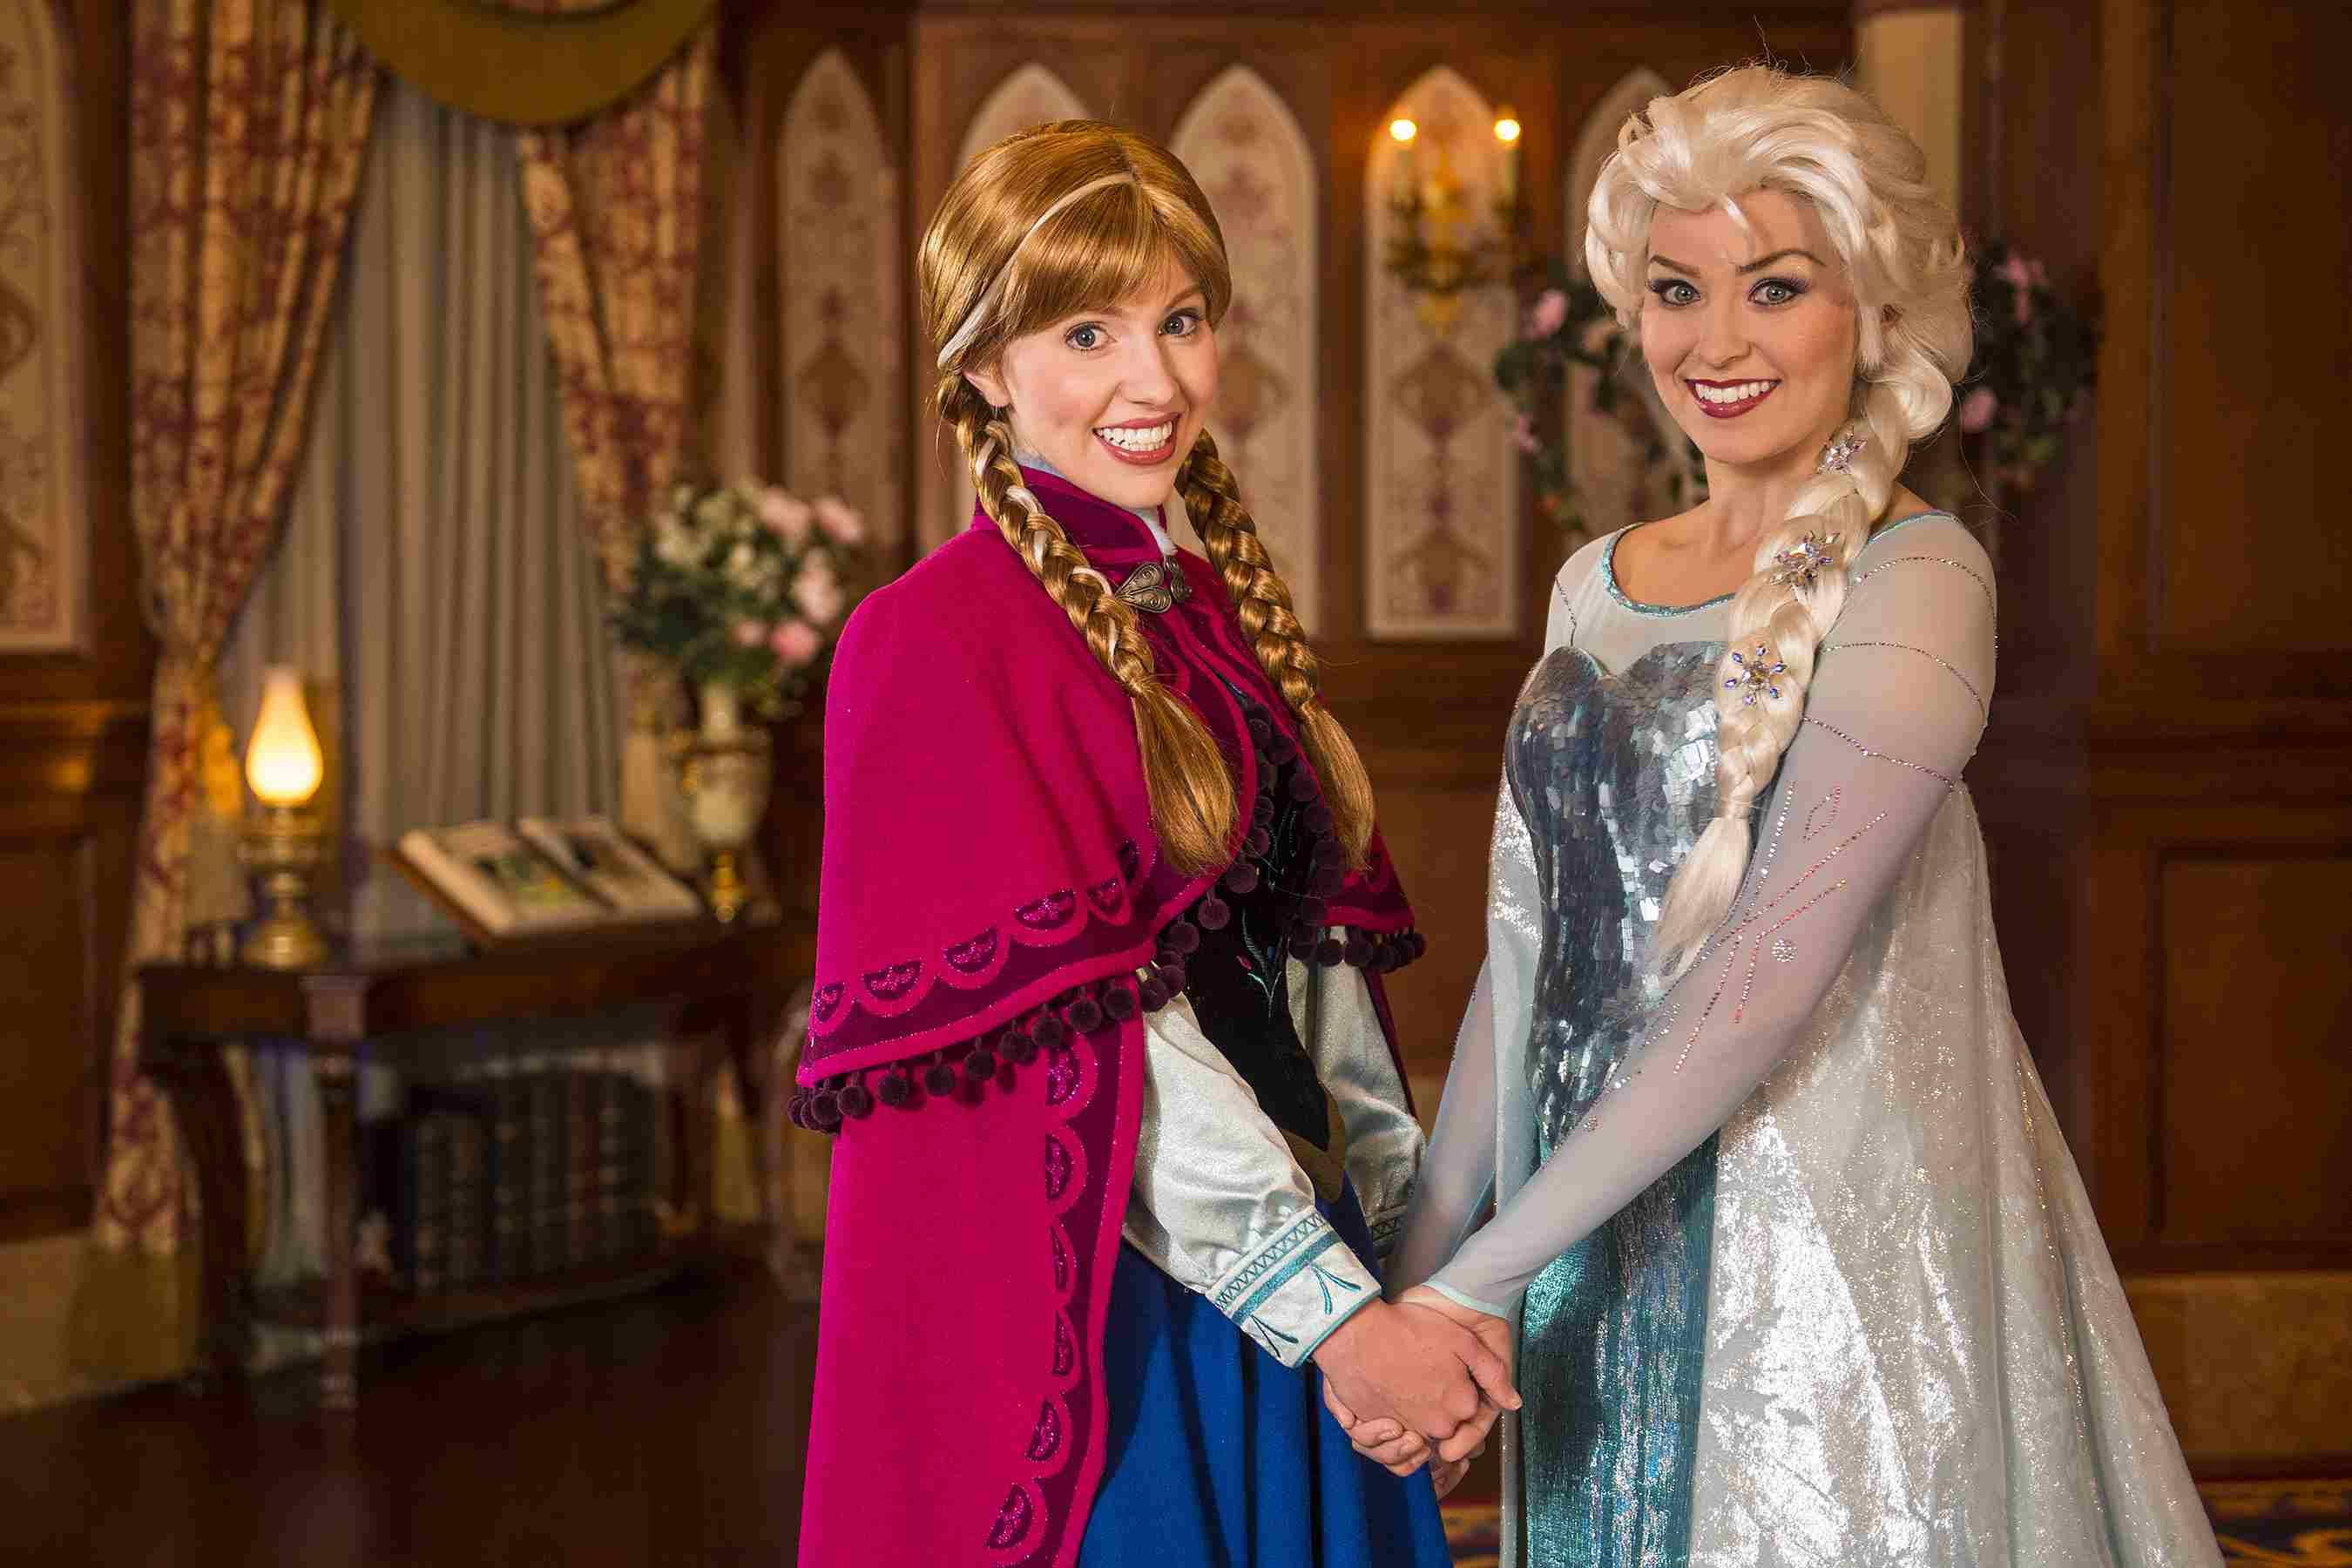 Top 5 Picks For Frozen Fans At Disney World